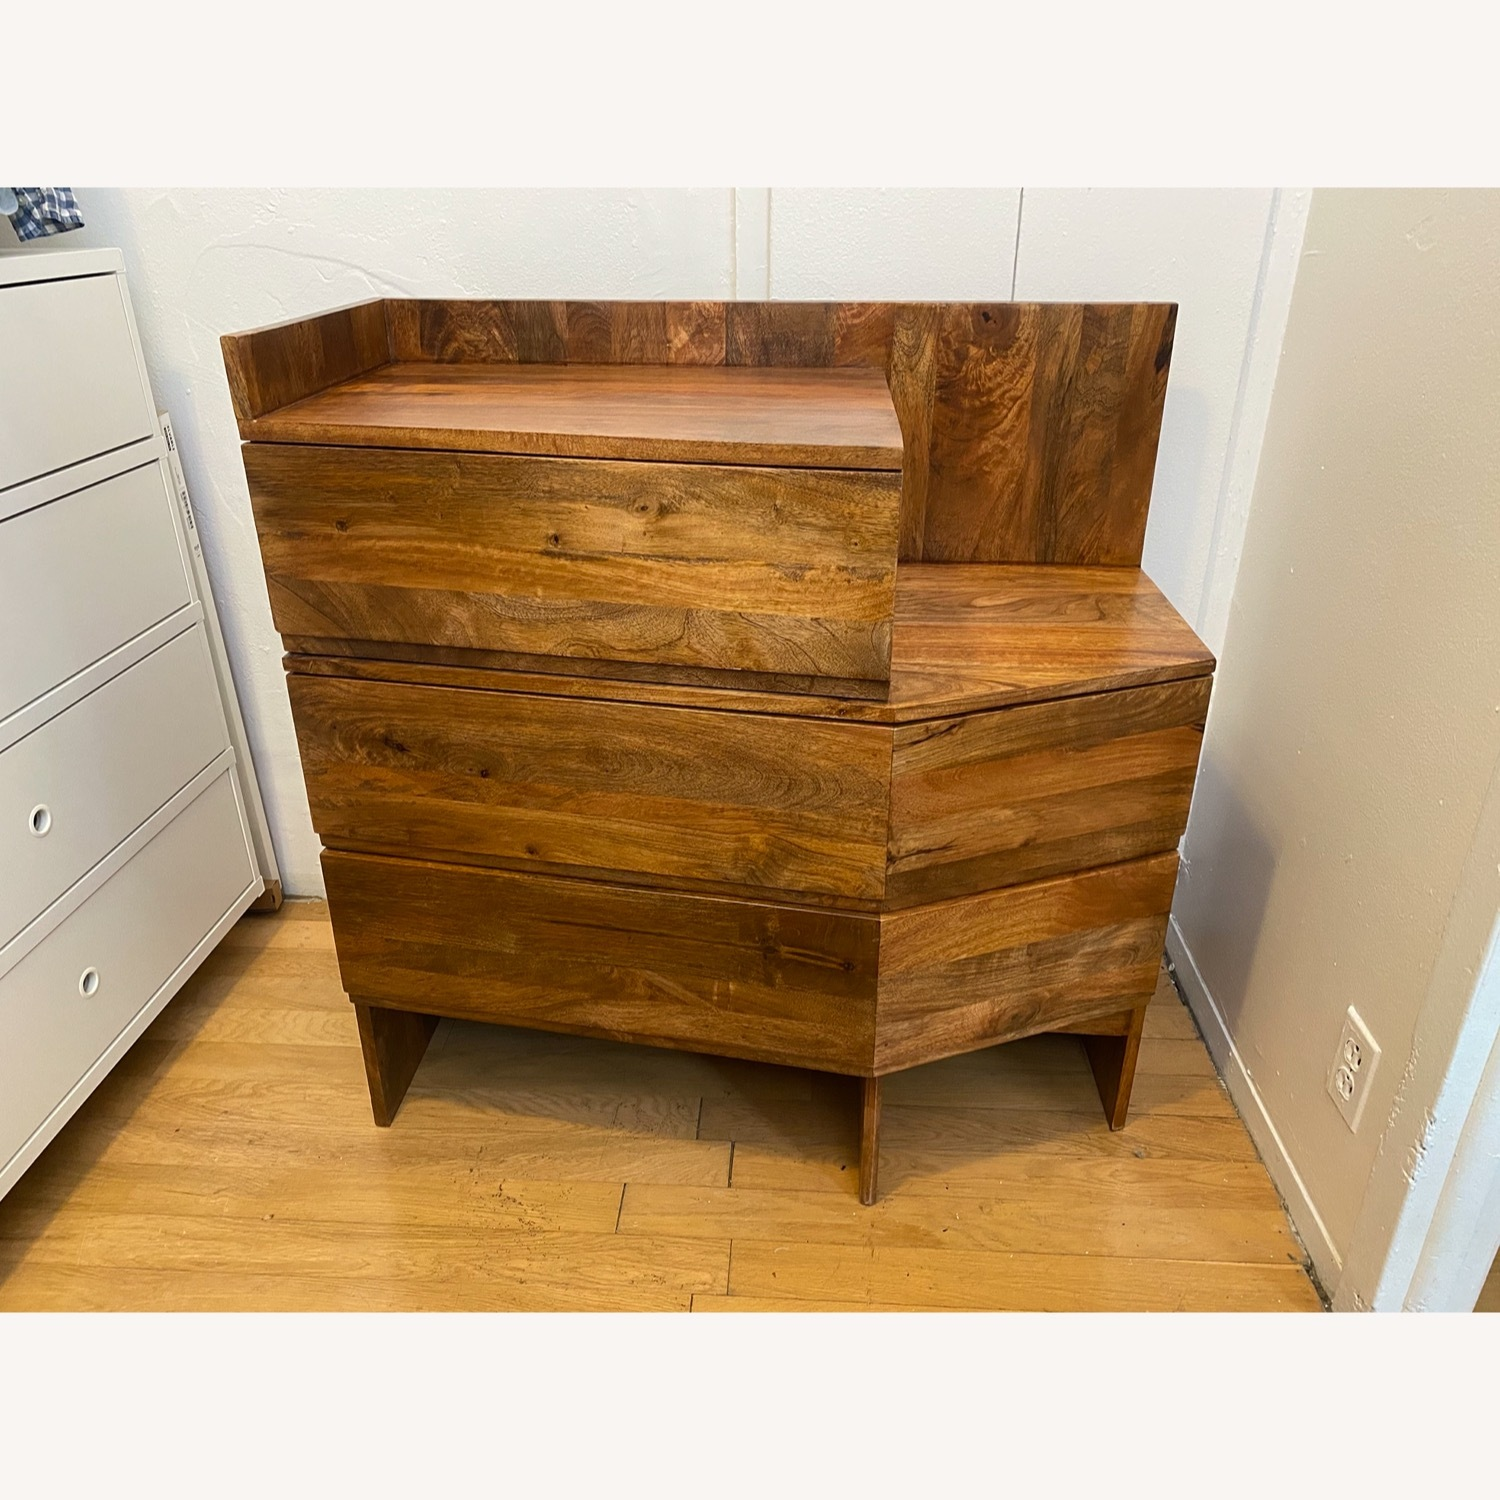 Urban Outfitters Mango Wood Dresser - image-1